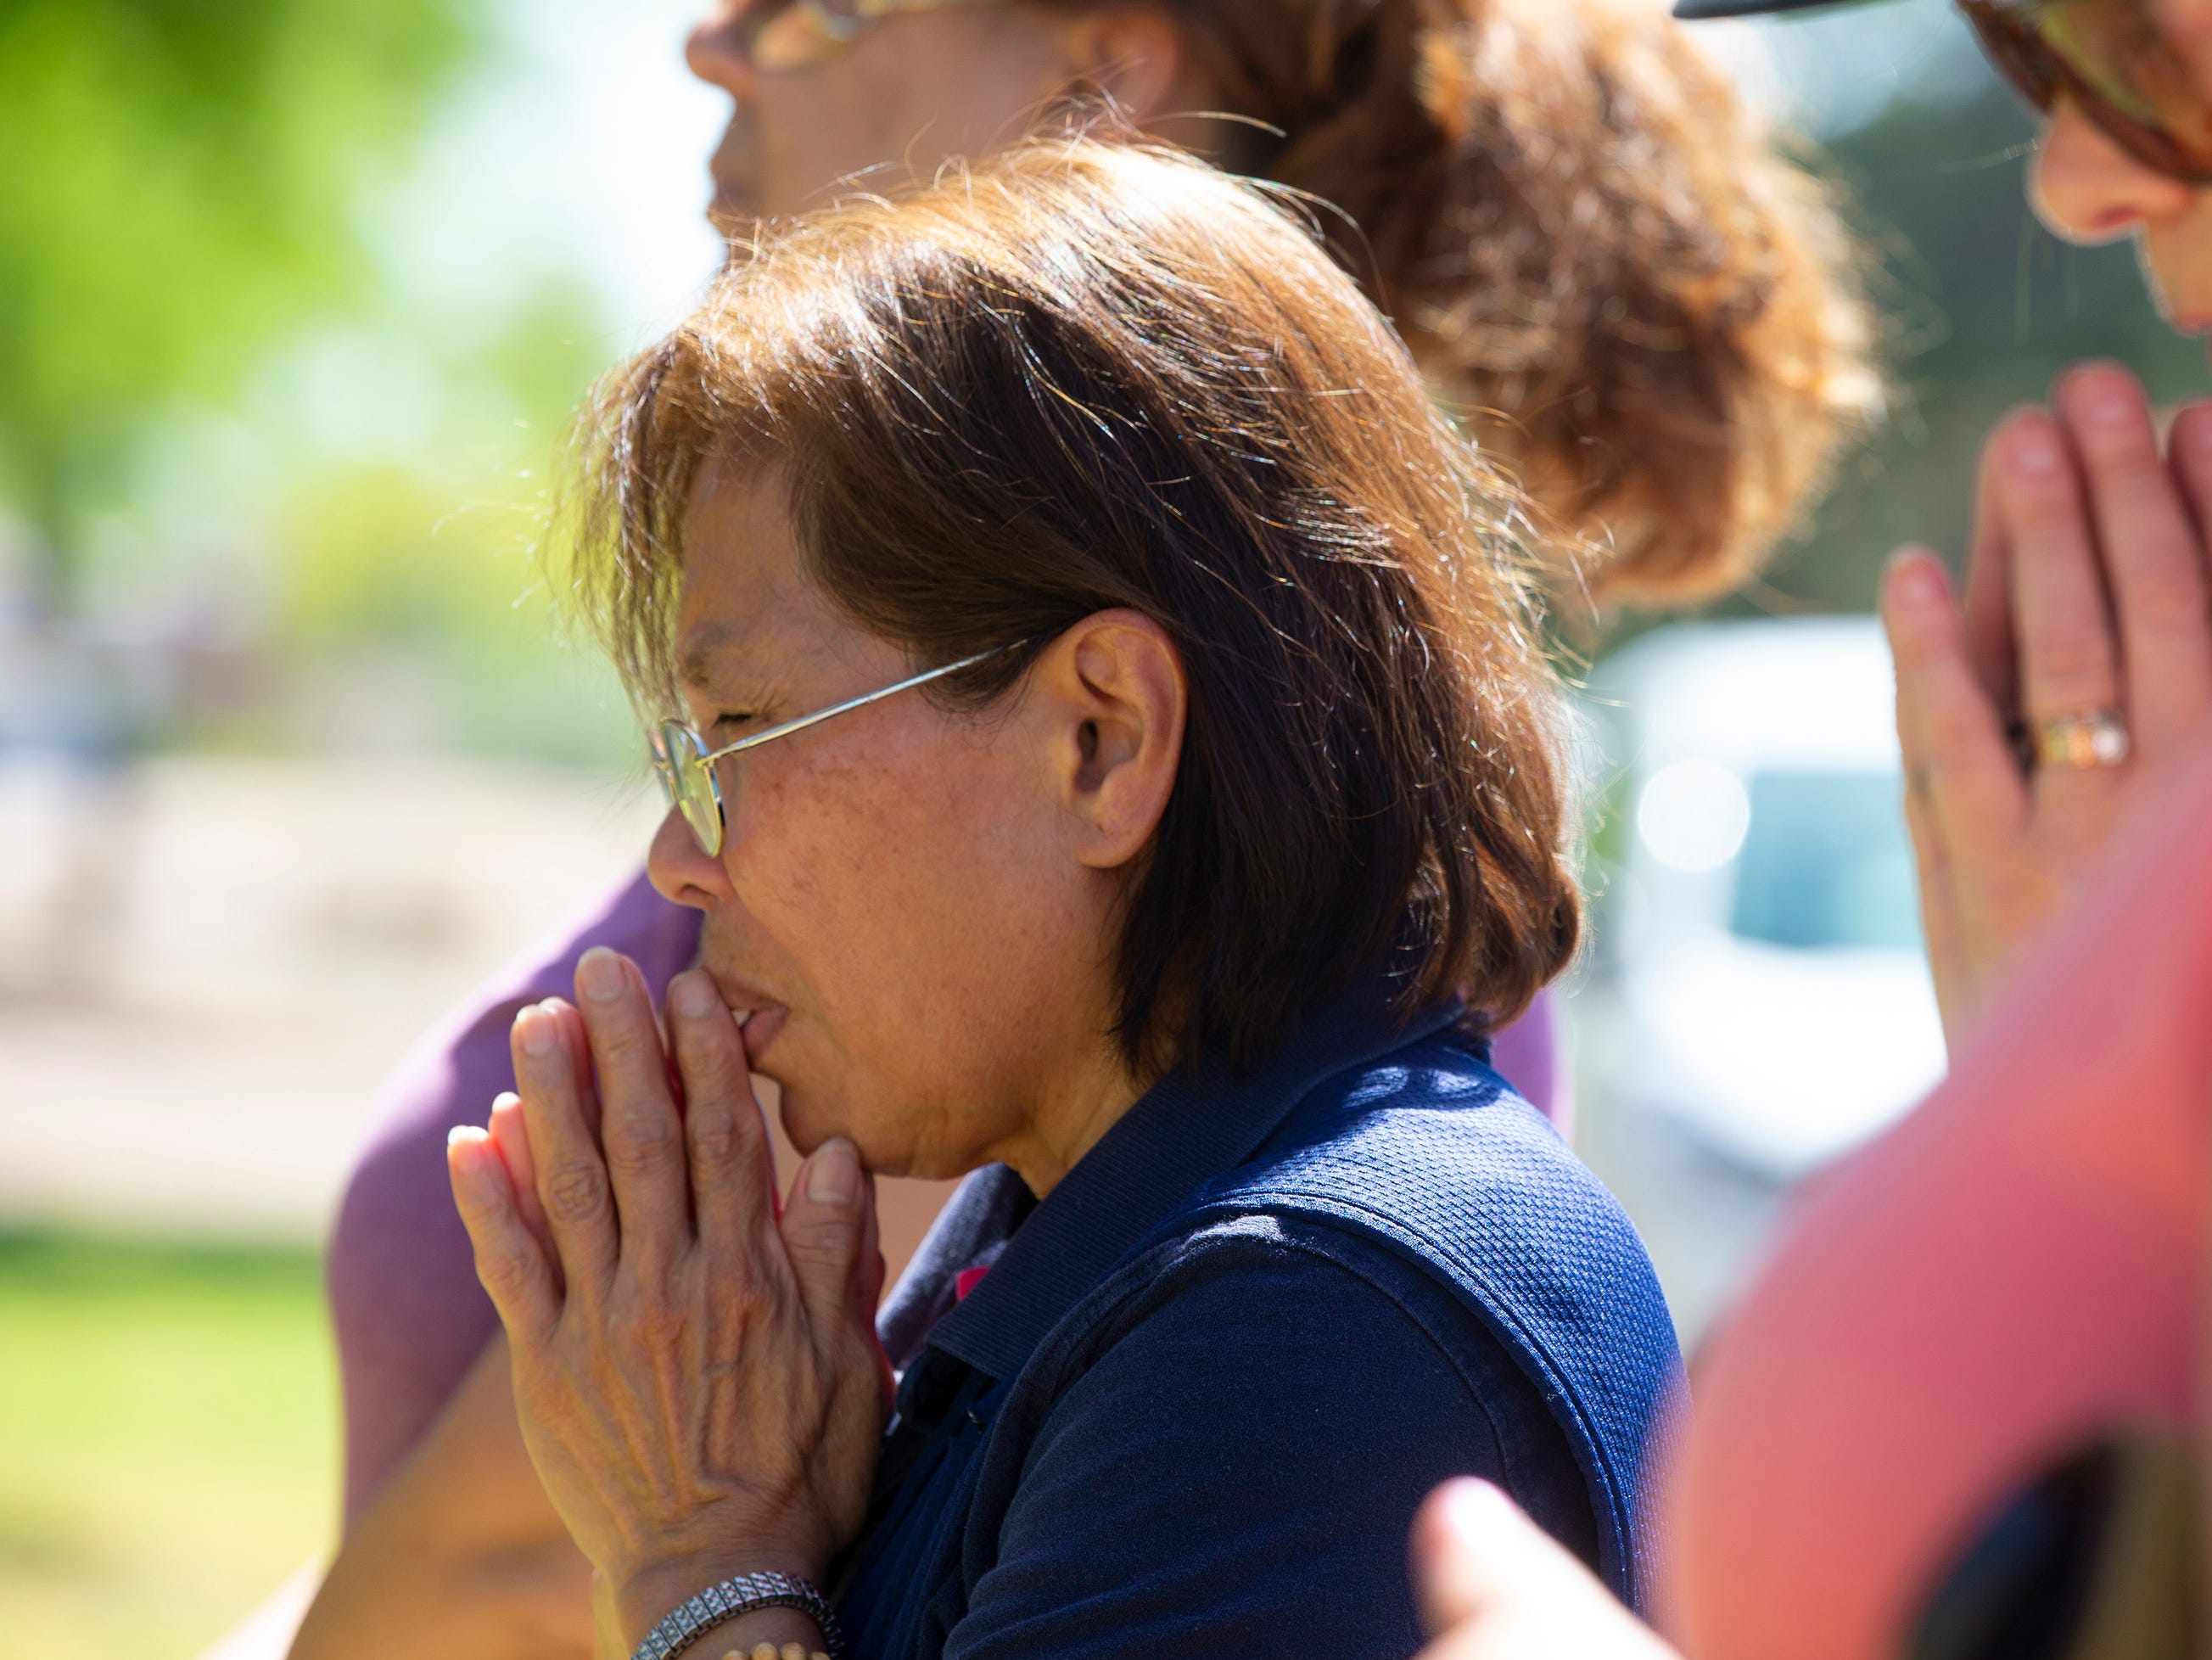 Parishioner Virginia Legarce prays outside St. Joseph Catholic Church in Phoenix on May 1, 2019, after a fire destroyed most of the church.